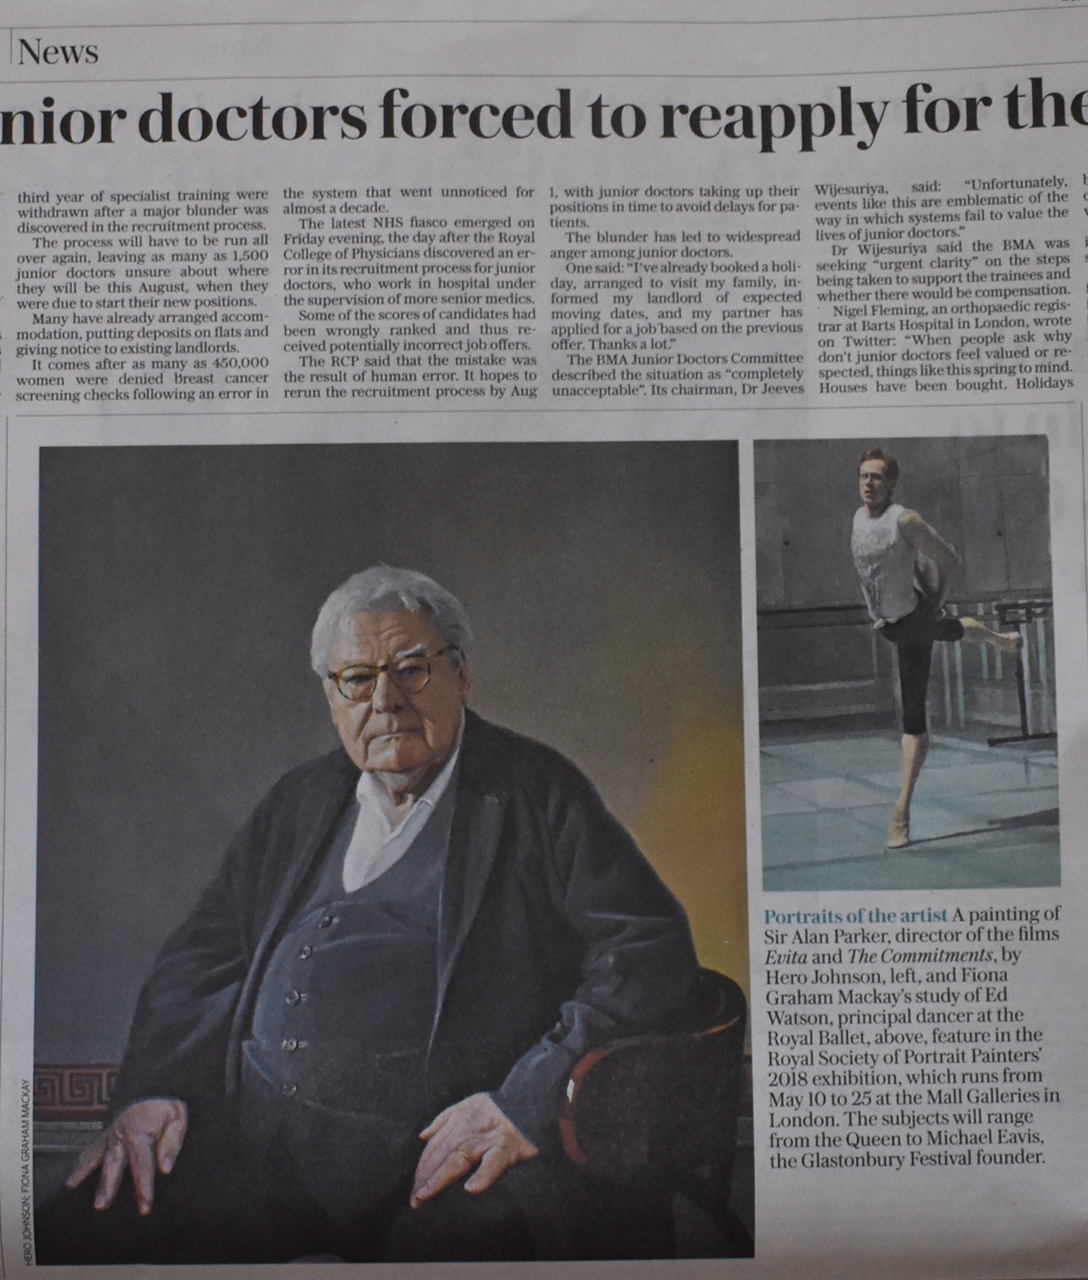 Hero Johnson's portrait of Sir Alan Parker in the Sunday Telegraph.